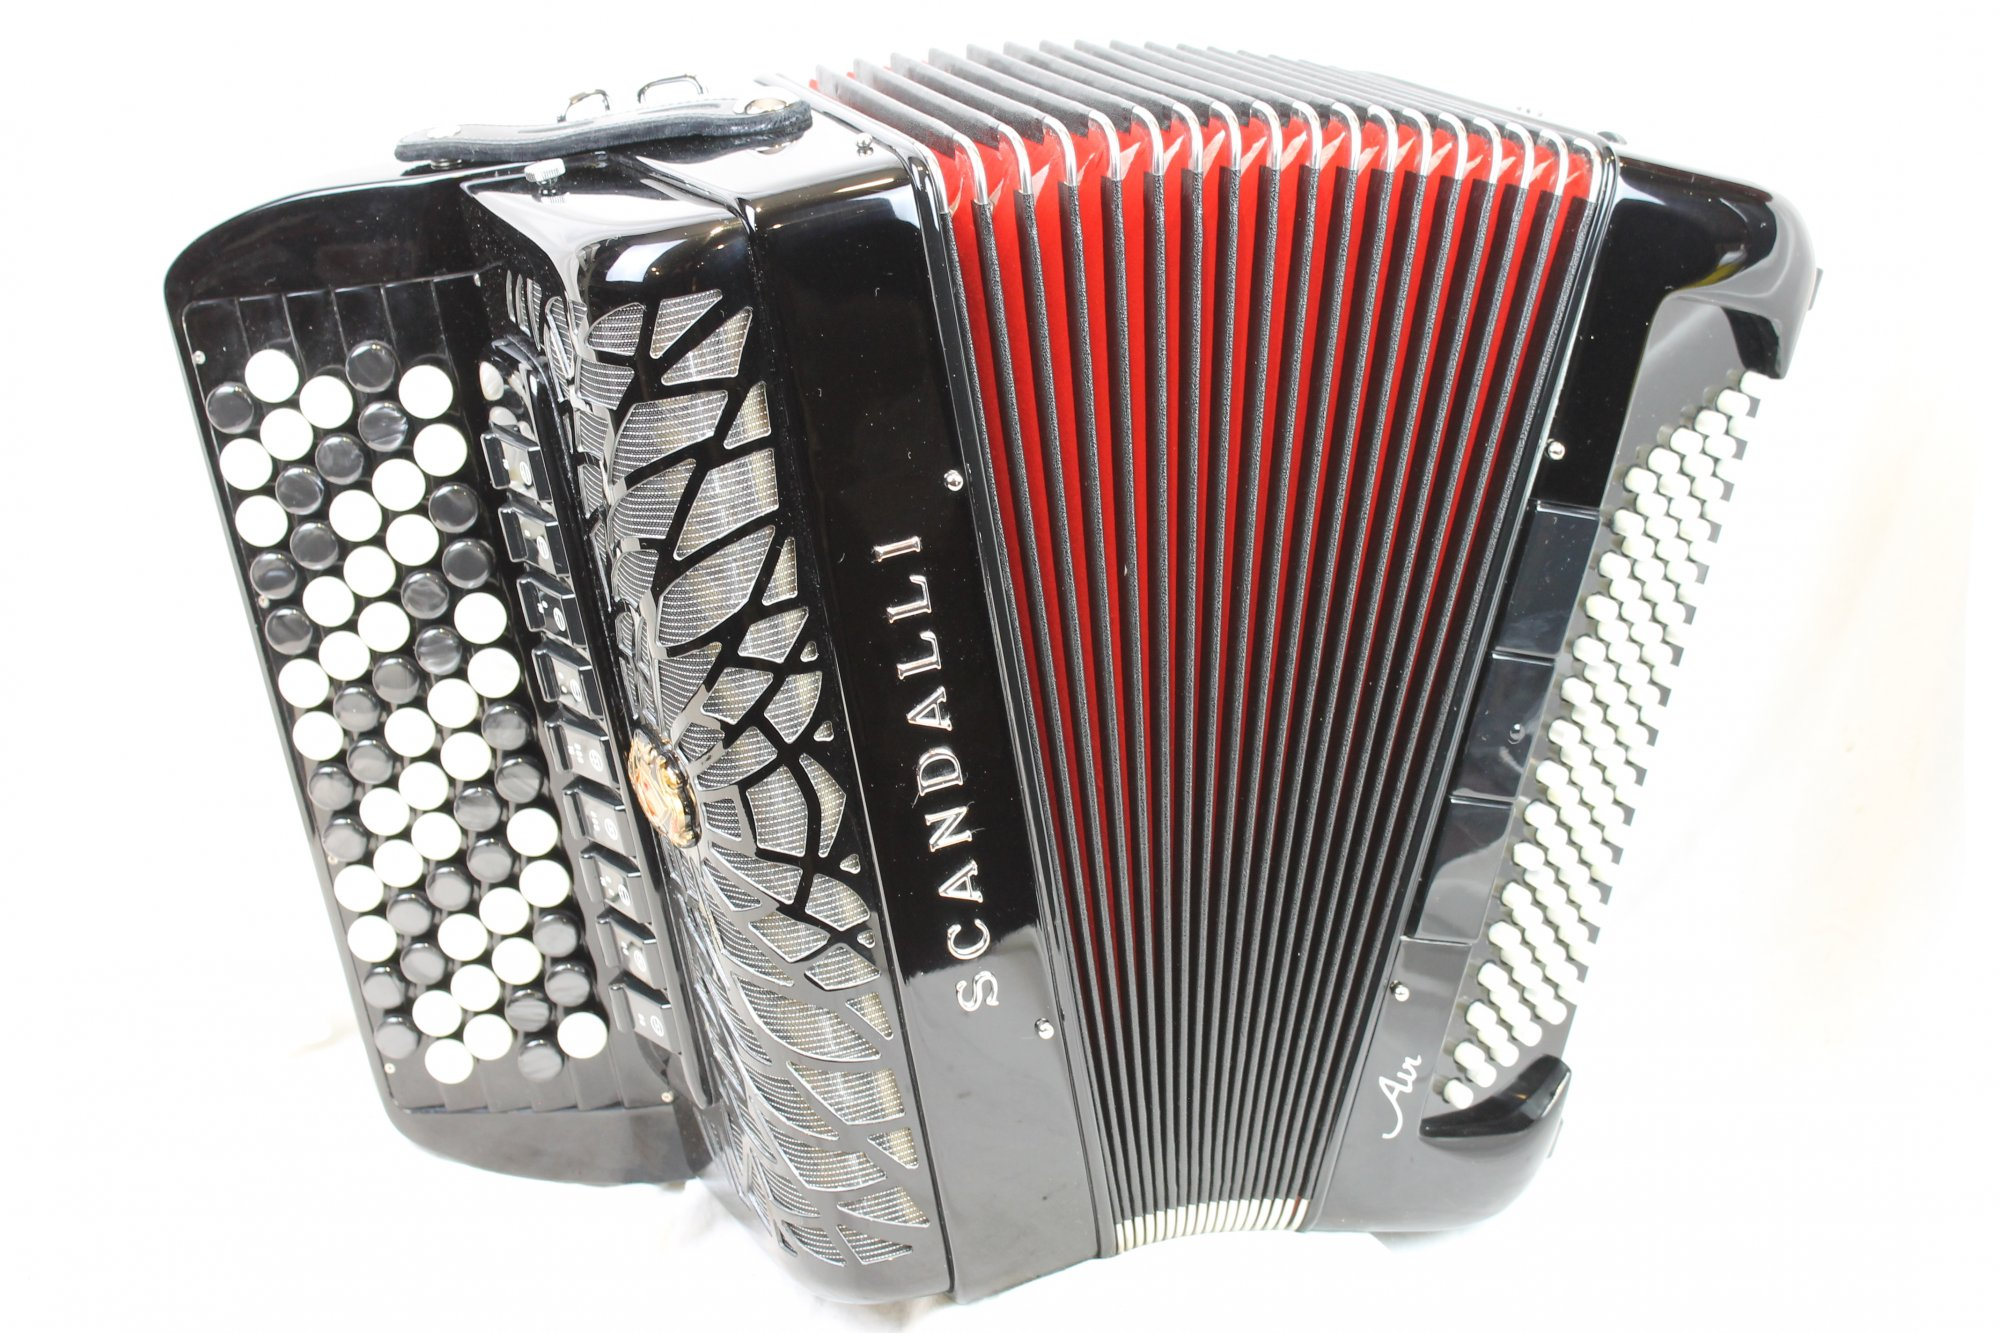 NEW Black Scandalli Air Junior Chromatic Button Accordion C LMMM 67 96